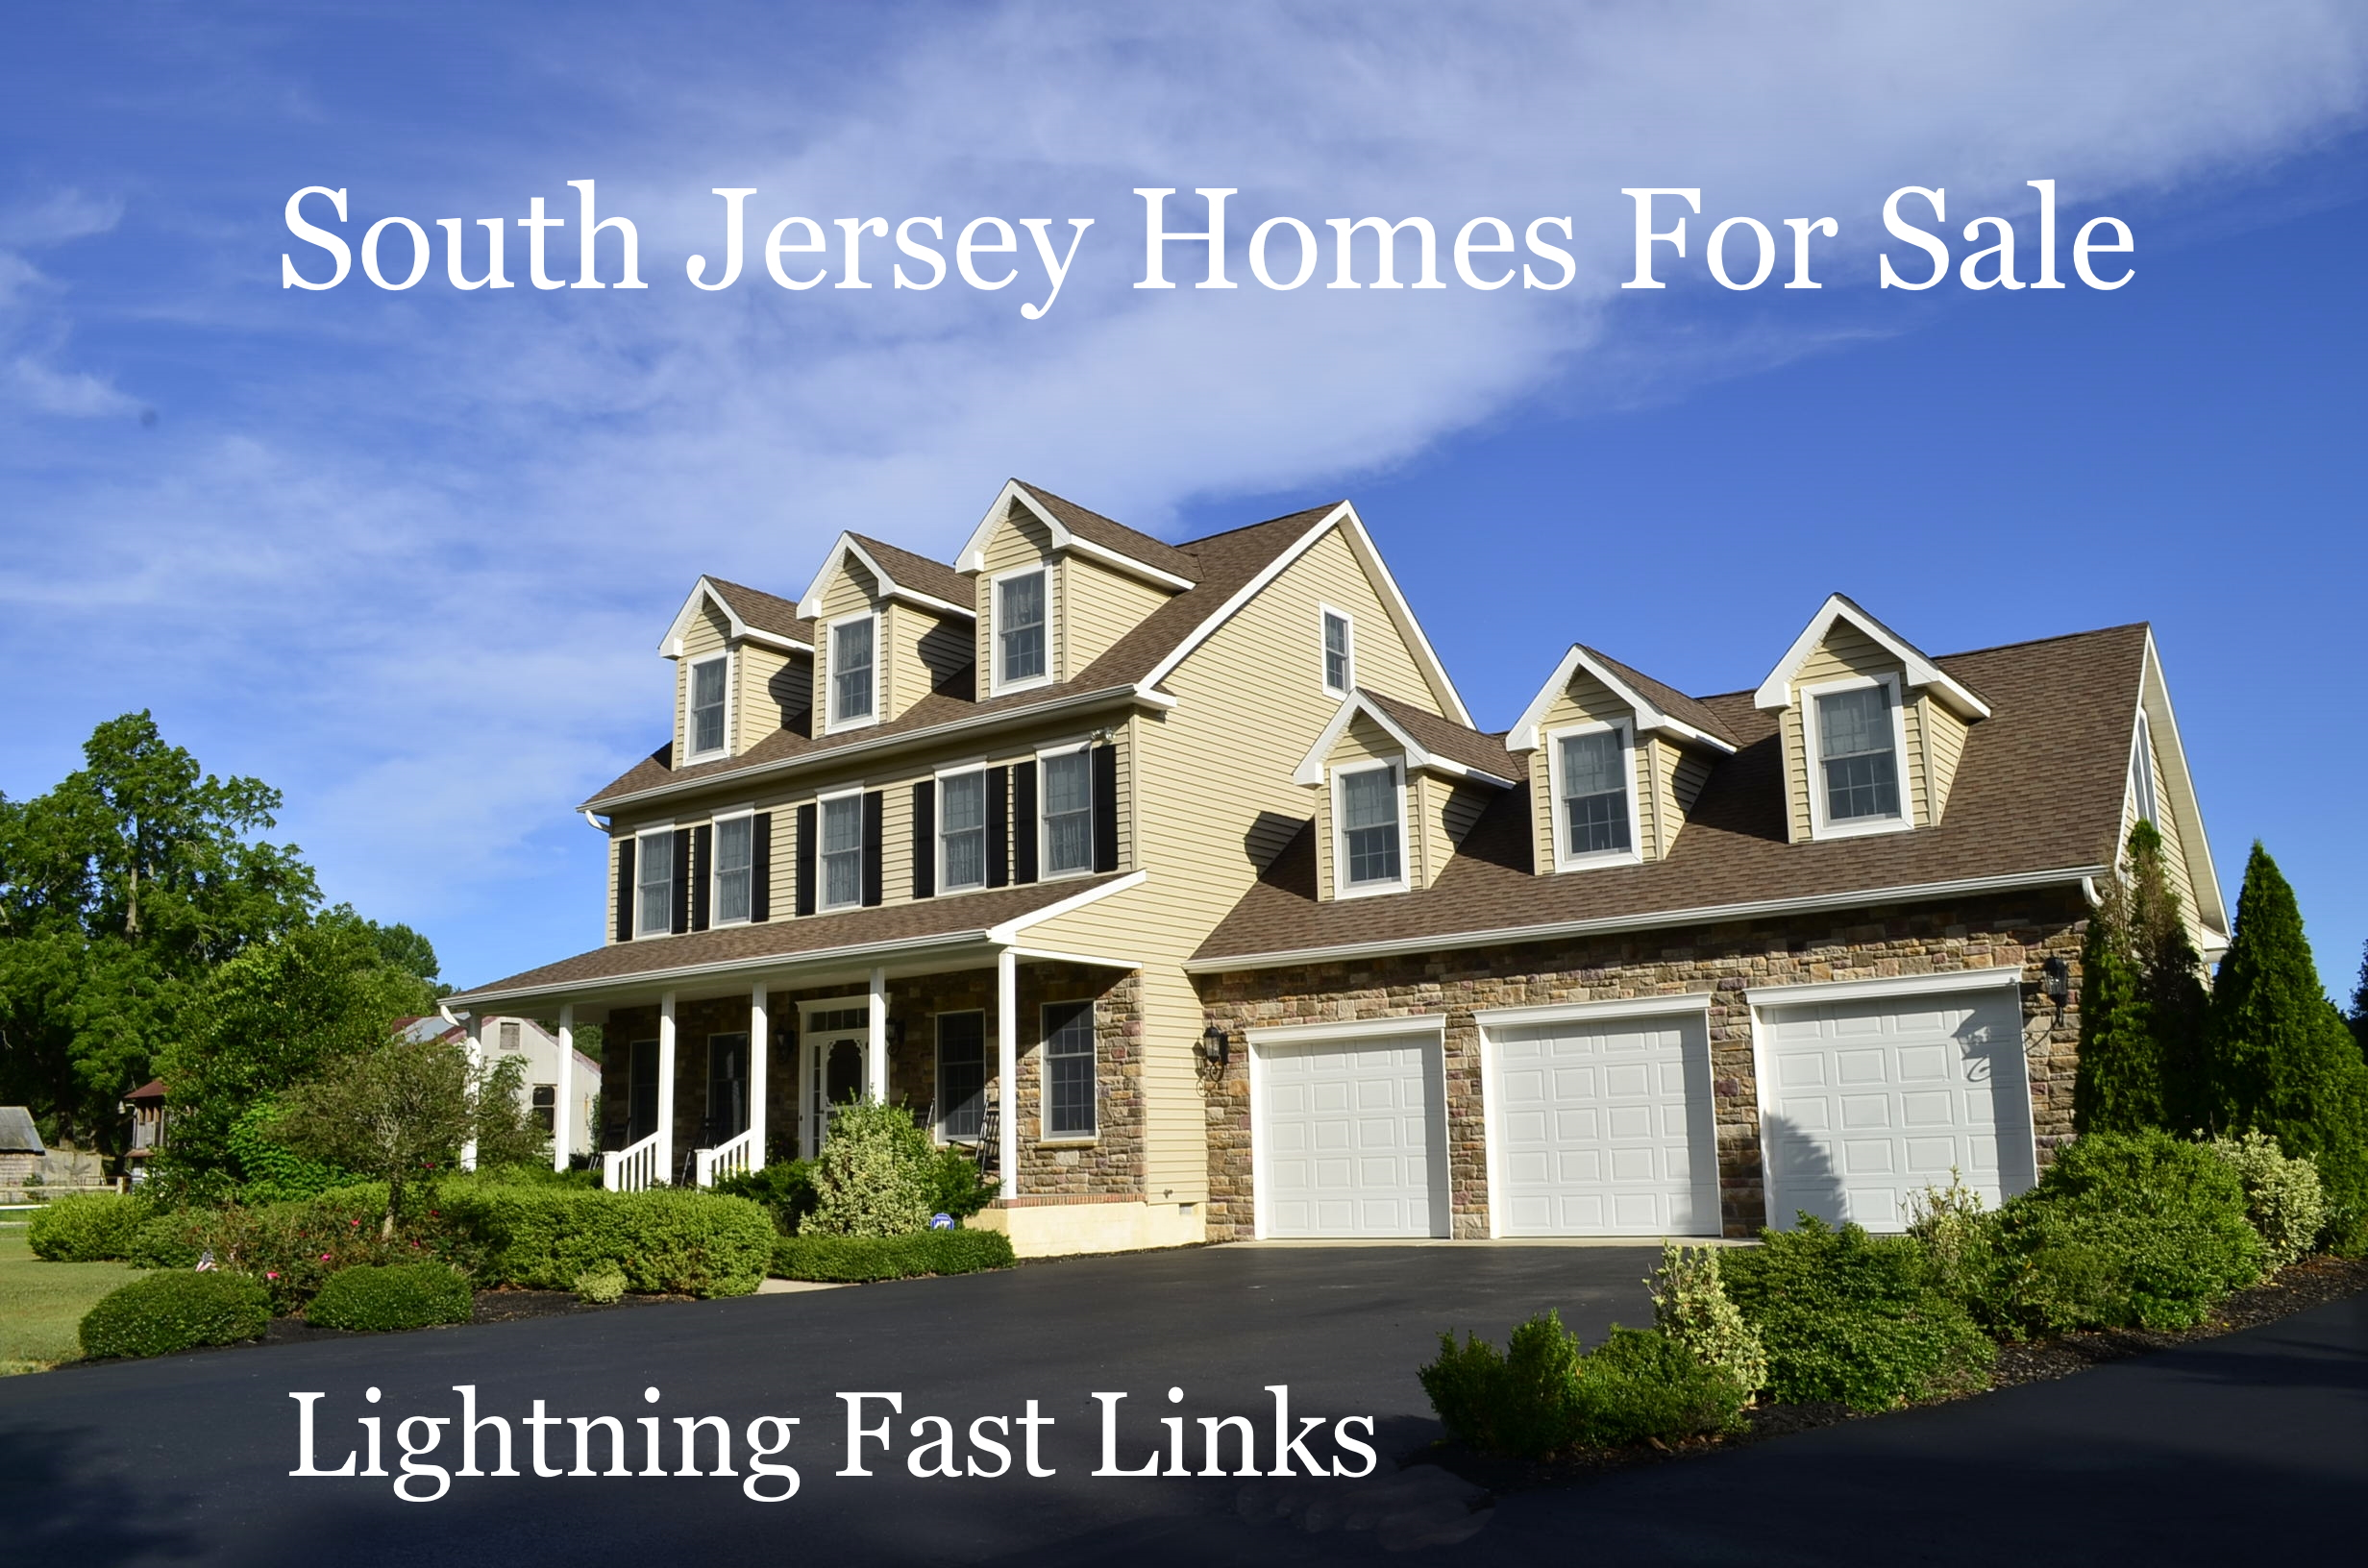 South Jersey Homes For Sale